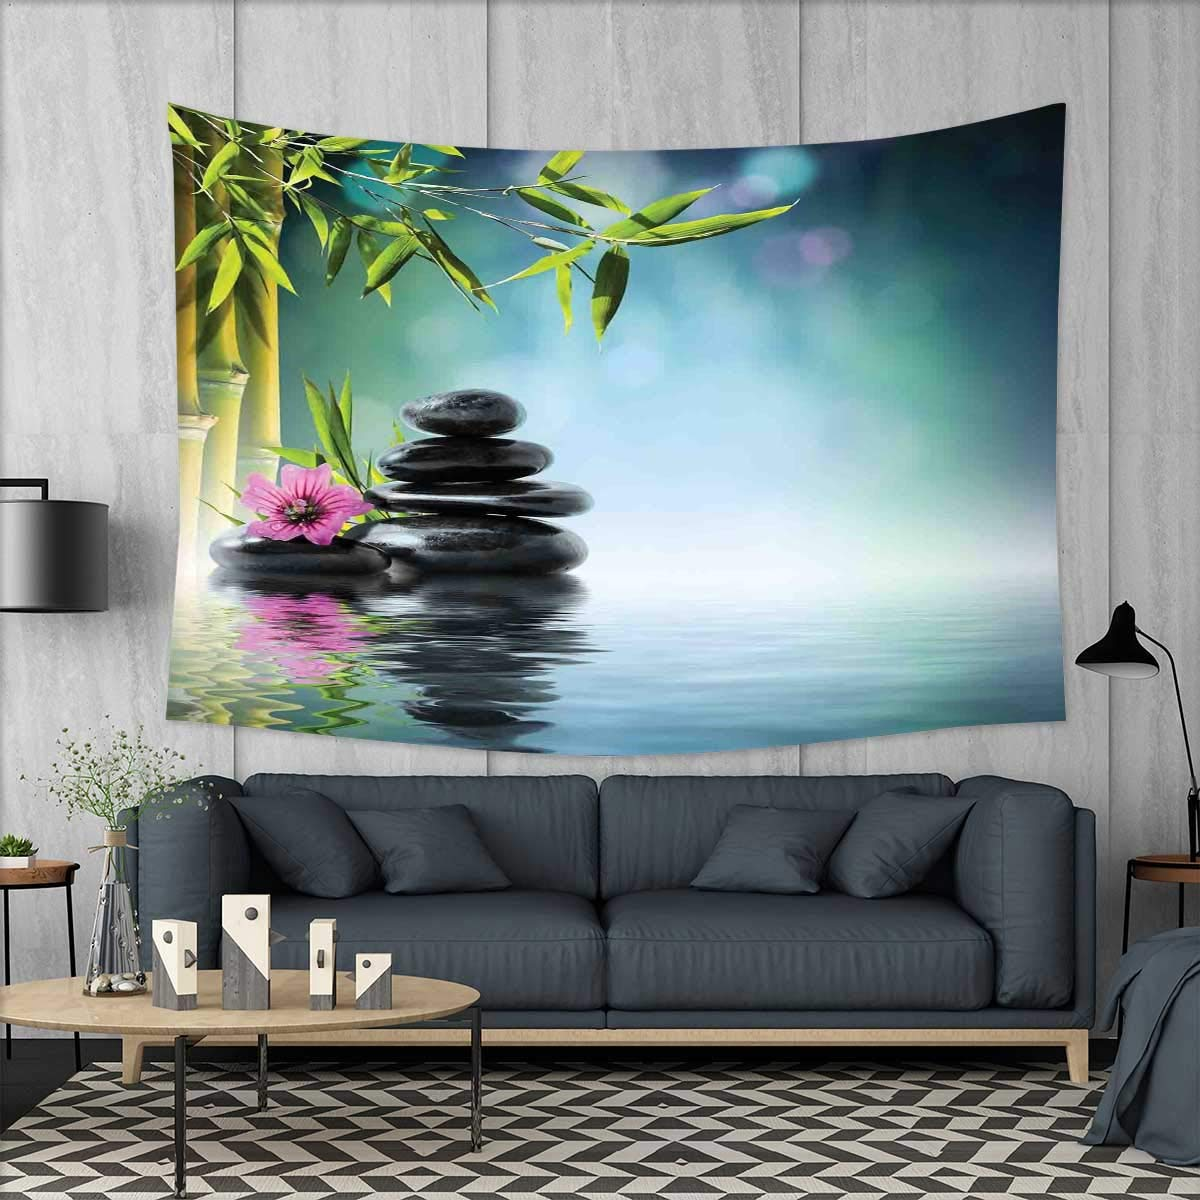 smallbeefly Zen Garden Customed Widened Tapestry Pink Flower Spa Stones and Bamboo Tree on The Water Relaxation Theraphy Peace Wall Hanging Tapestry 90''x60'' Multicolor